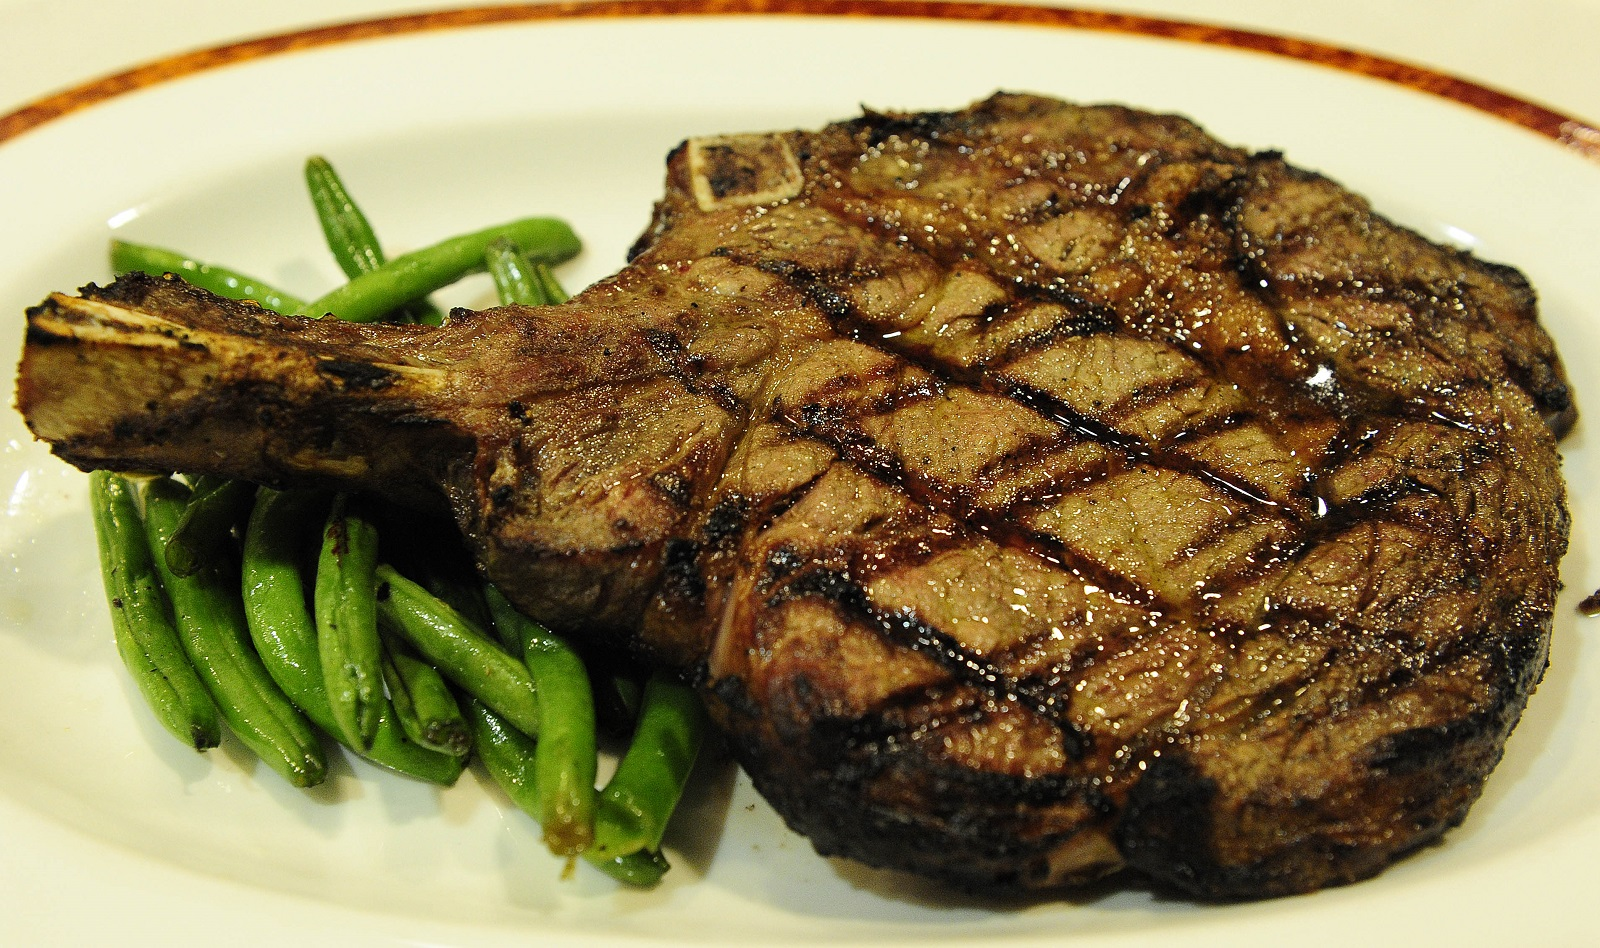 Bone-in ribeye steak at Western Door Steakhouse in the Seneca Niagara Casino. (Buffalo News file photo)